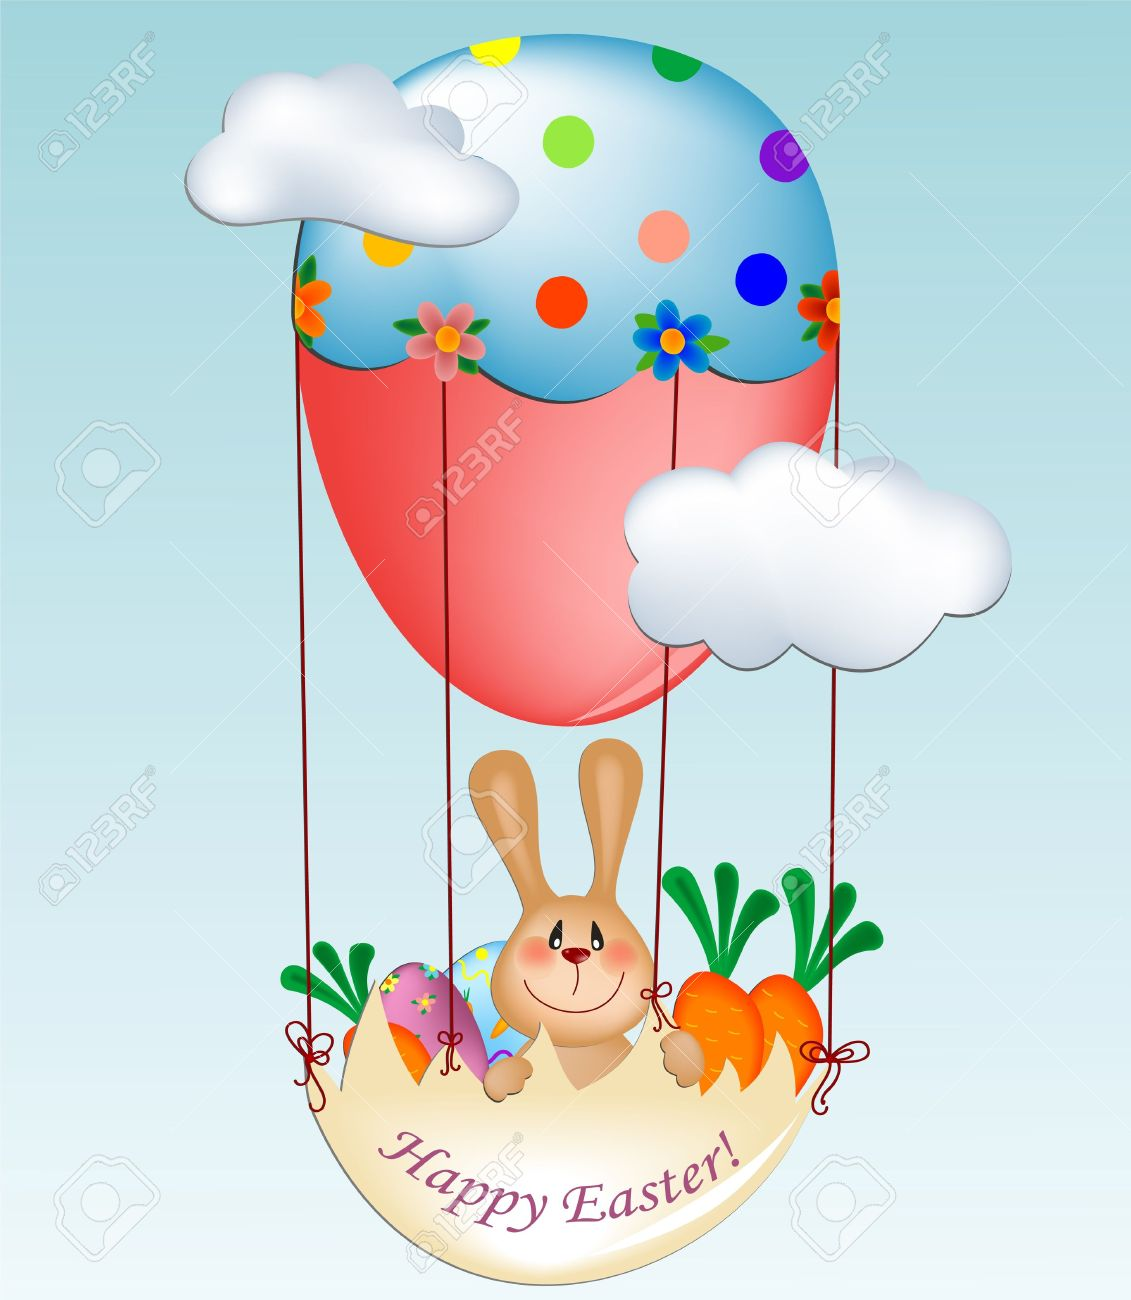 Easter Greeting Card With Bunny In Balloon Gondola Royalty Free.